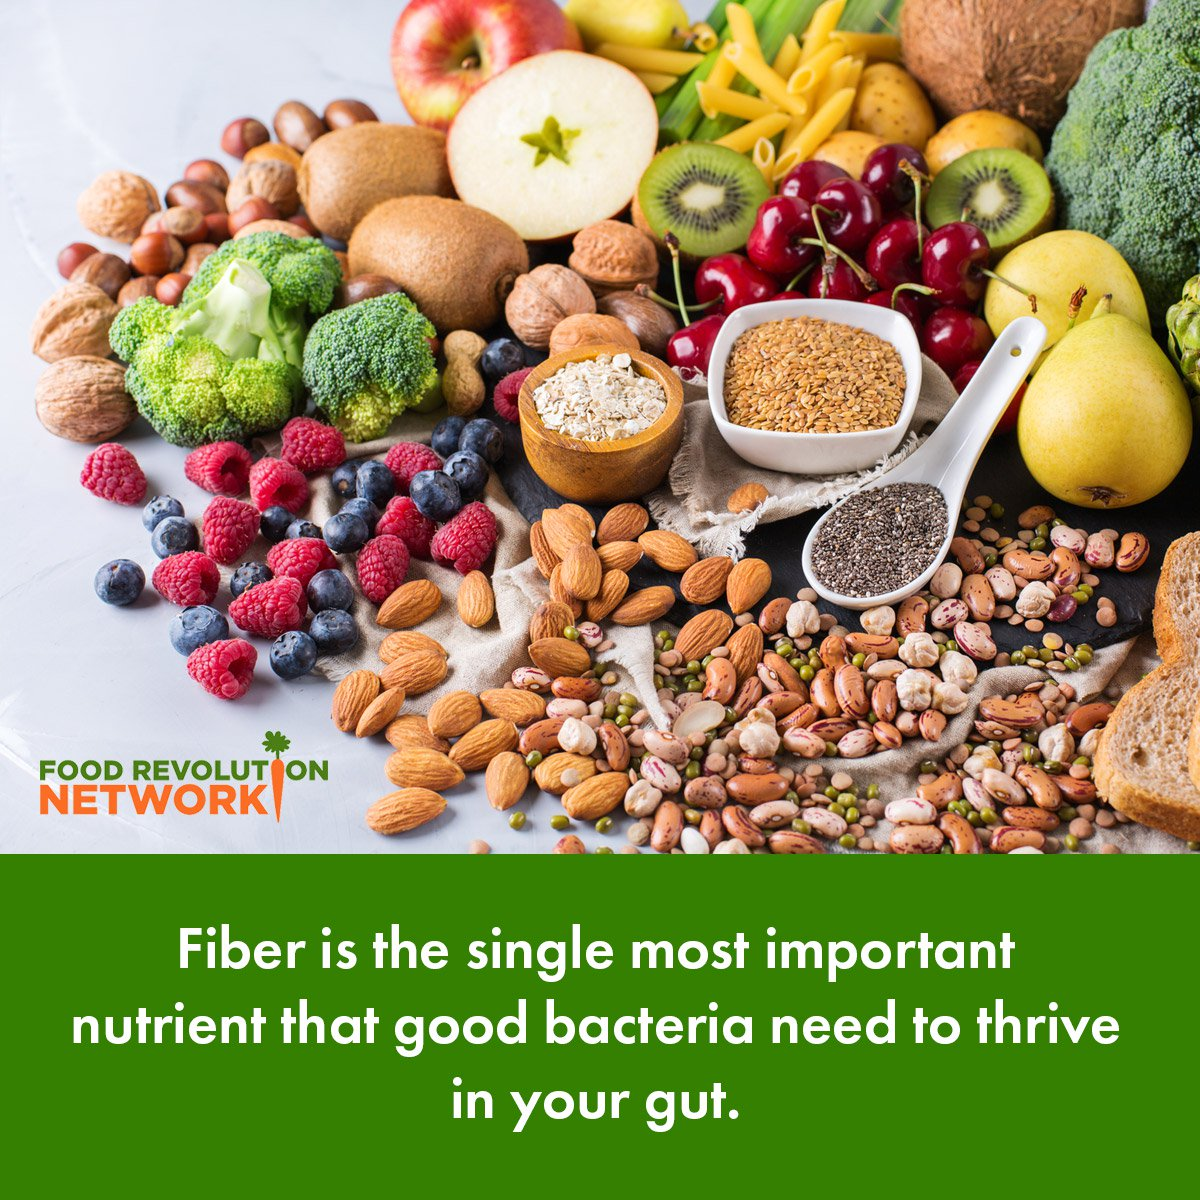 Fiber is the single most important nutrient that good bacteria need to thrive in your gut.